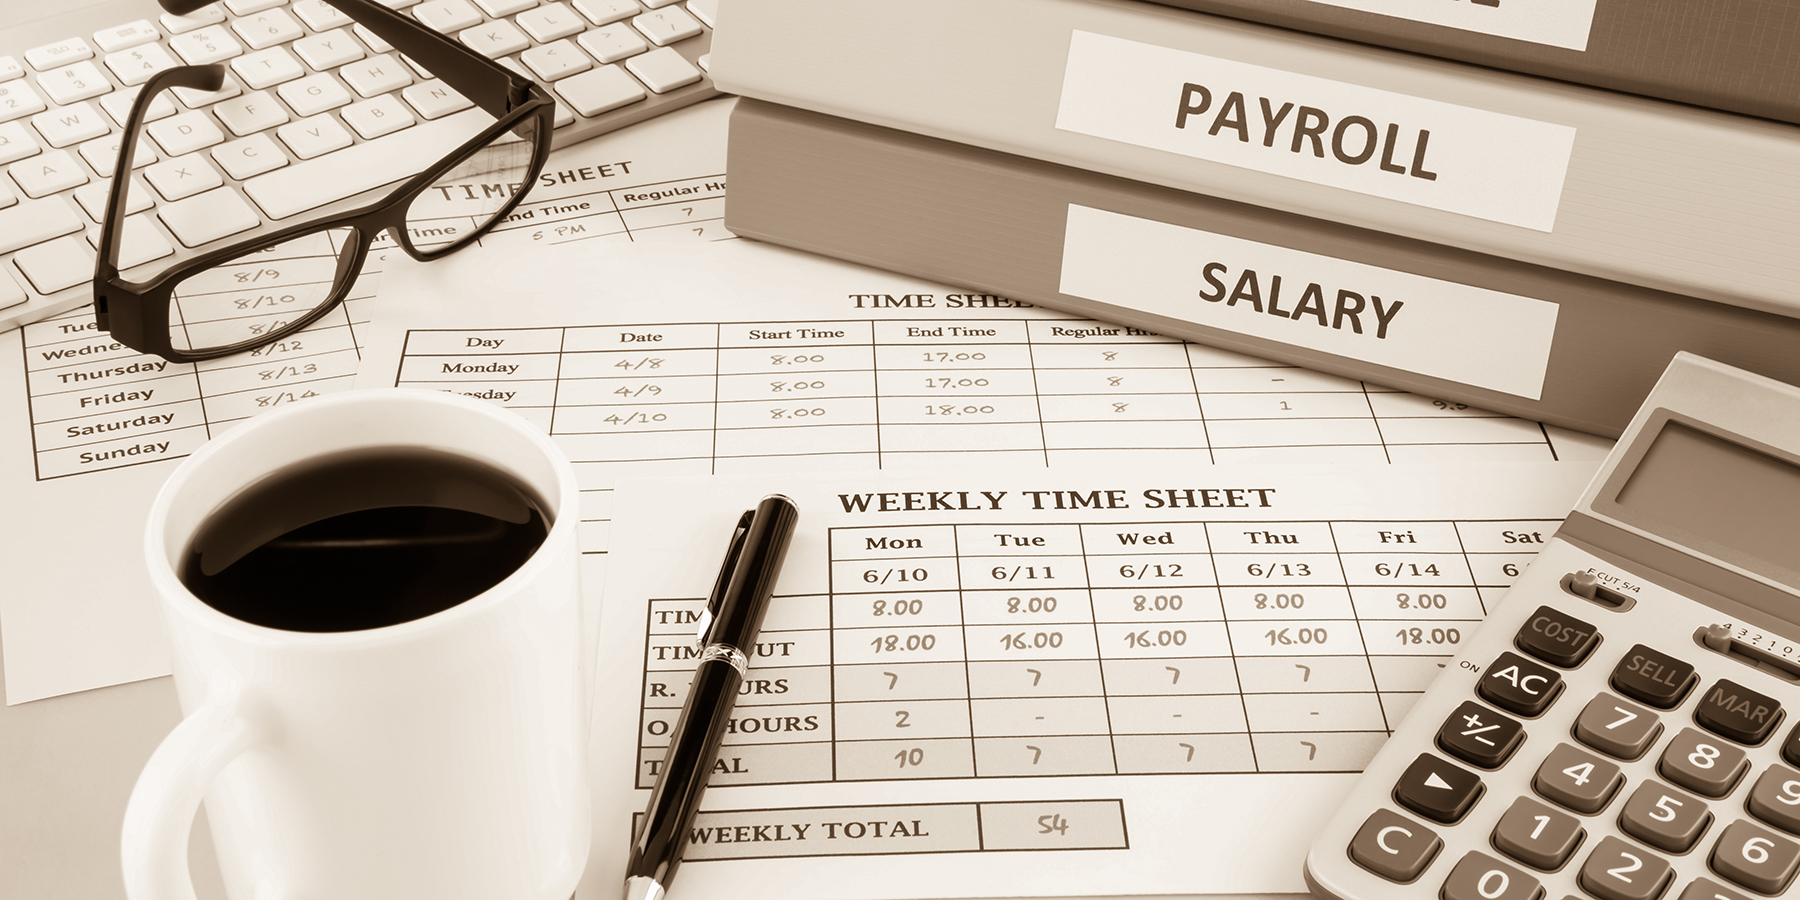 HM Revenue & Customs have started to crackdown on payroll tax mistakes